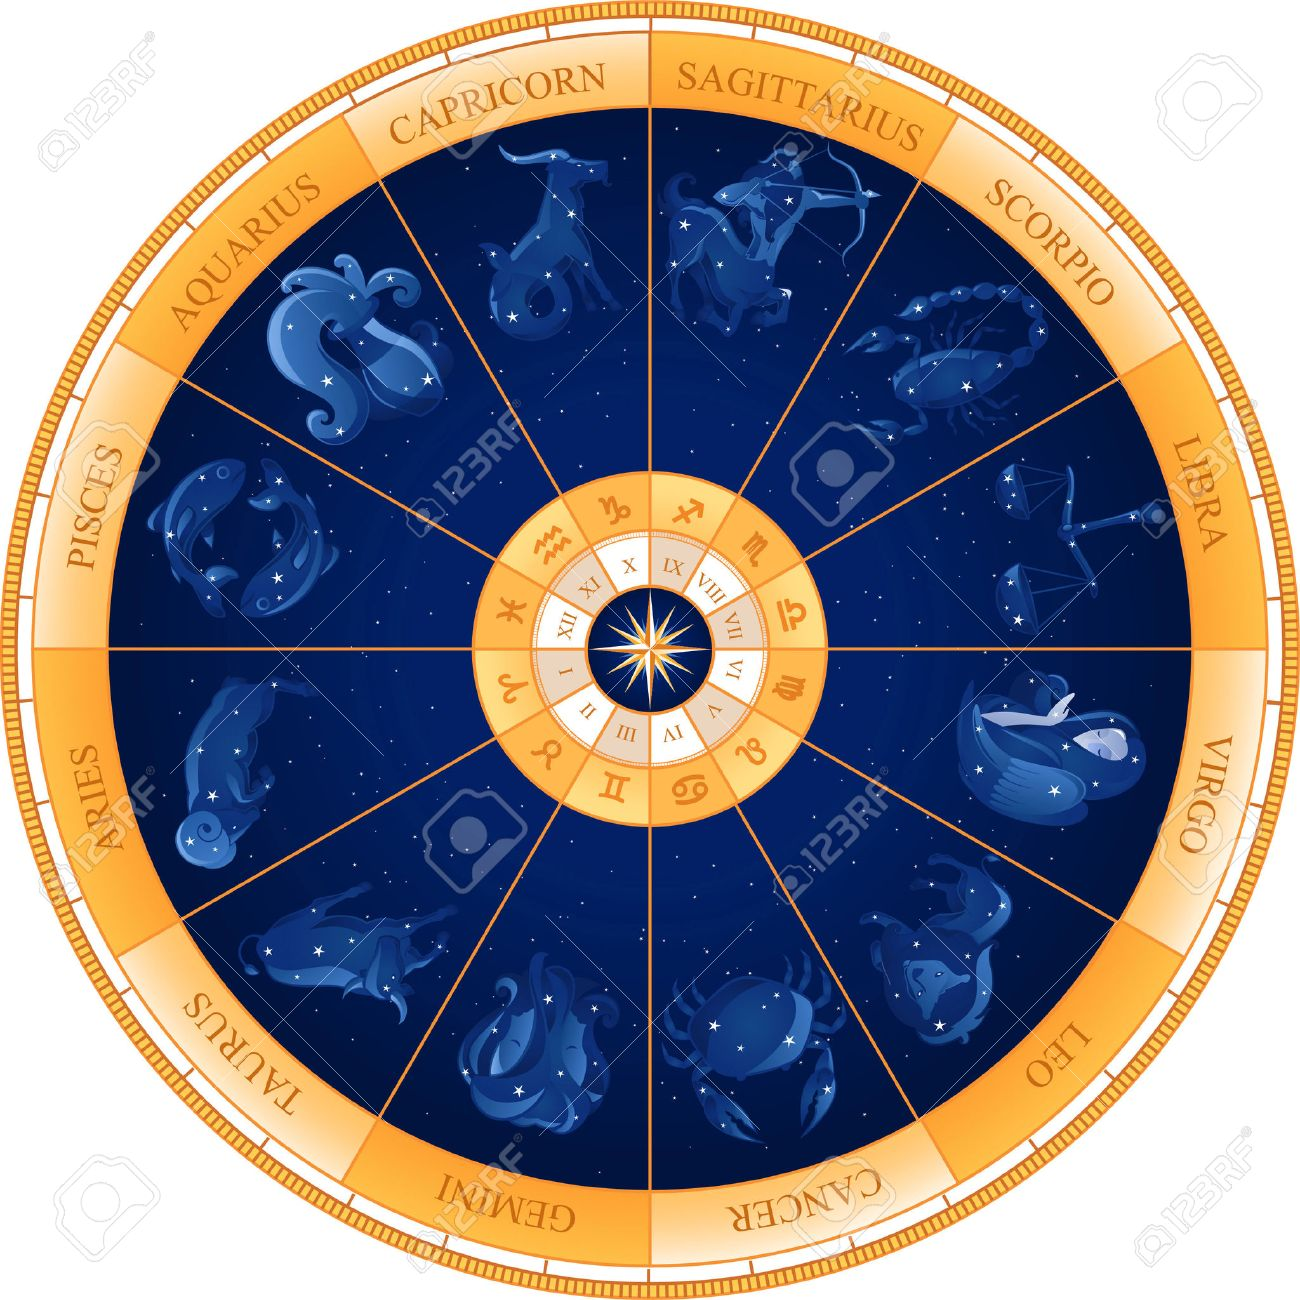 Zodiac wheel astrology natal chart royalty free cliparts vectors zodiac wheel astrology natal chart stock vector 34267840 nvjuhfo Image collections